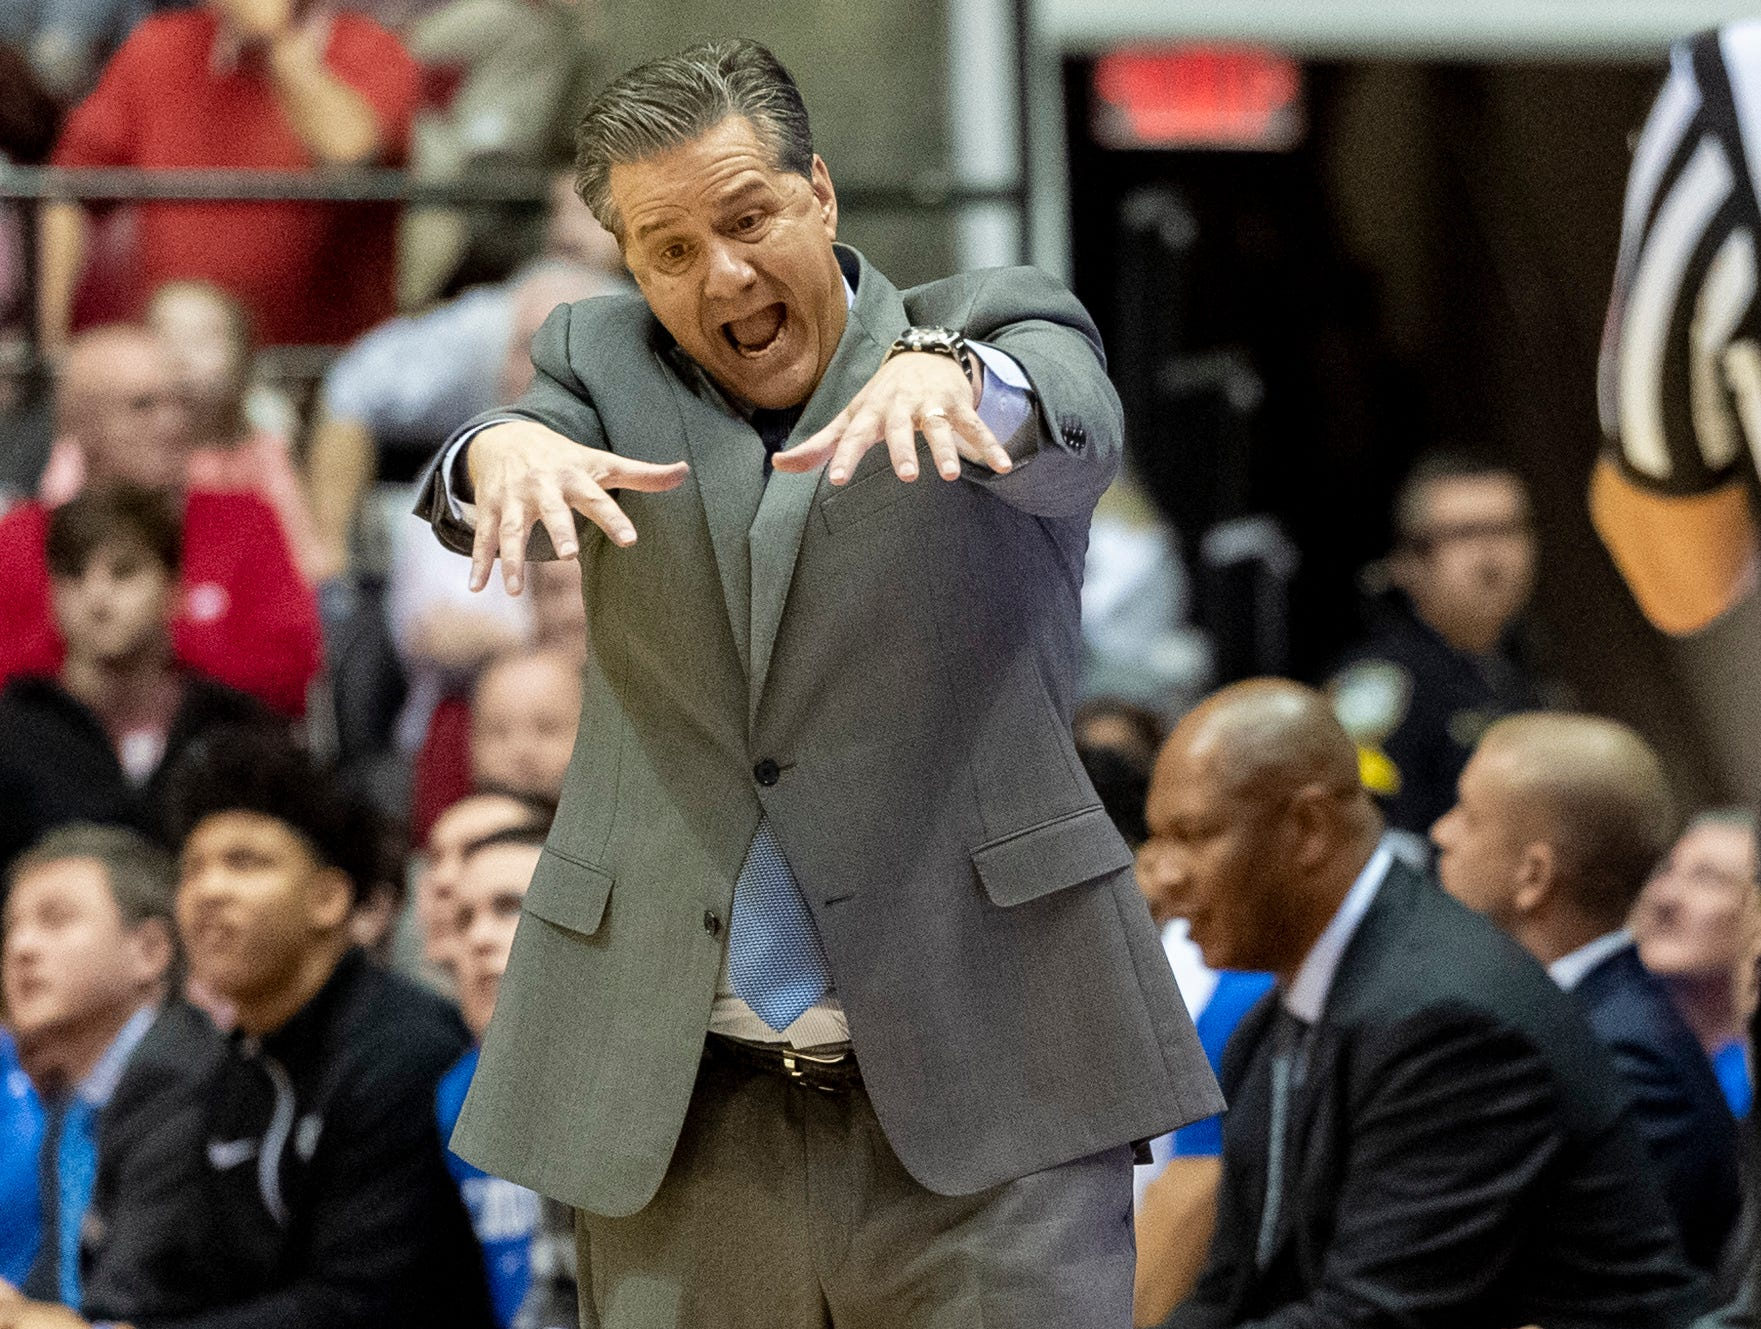 Kentucky head coach John Calipari argues a call with the referee during the second half of an NCAA college basketball game against Alabama, Saturday, Jan. 5, 2019, in Tuscaloosa, Ala.